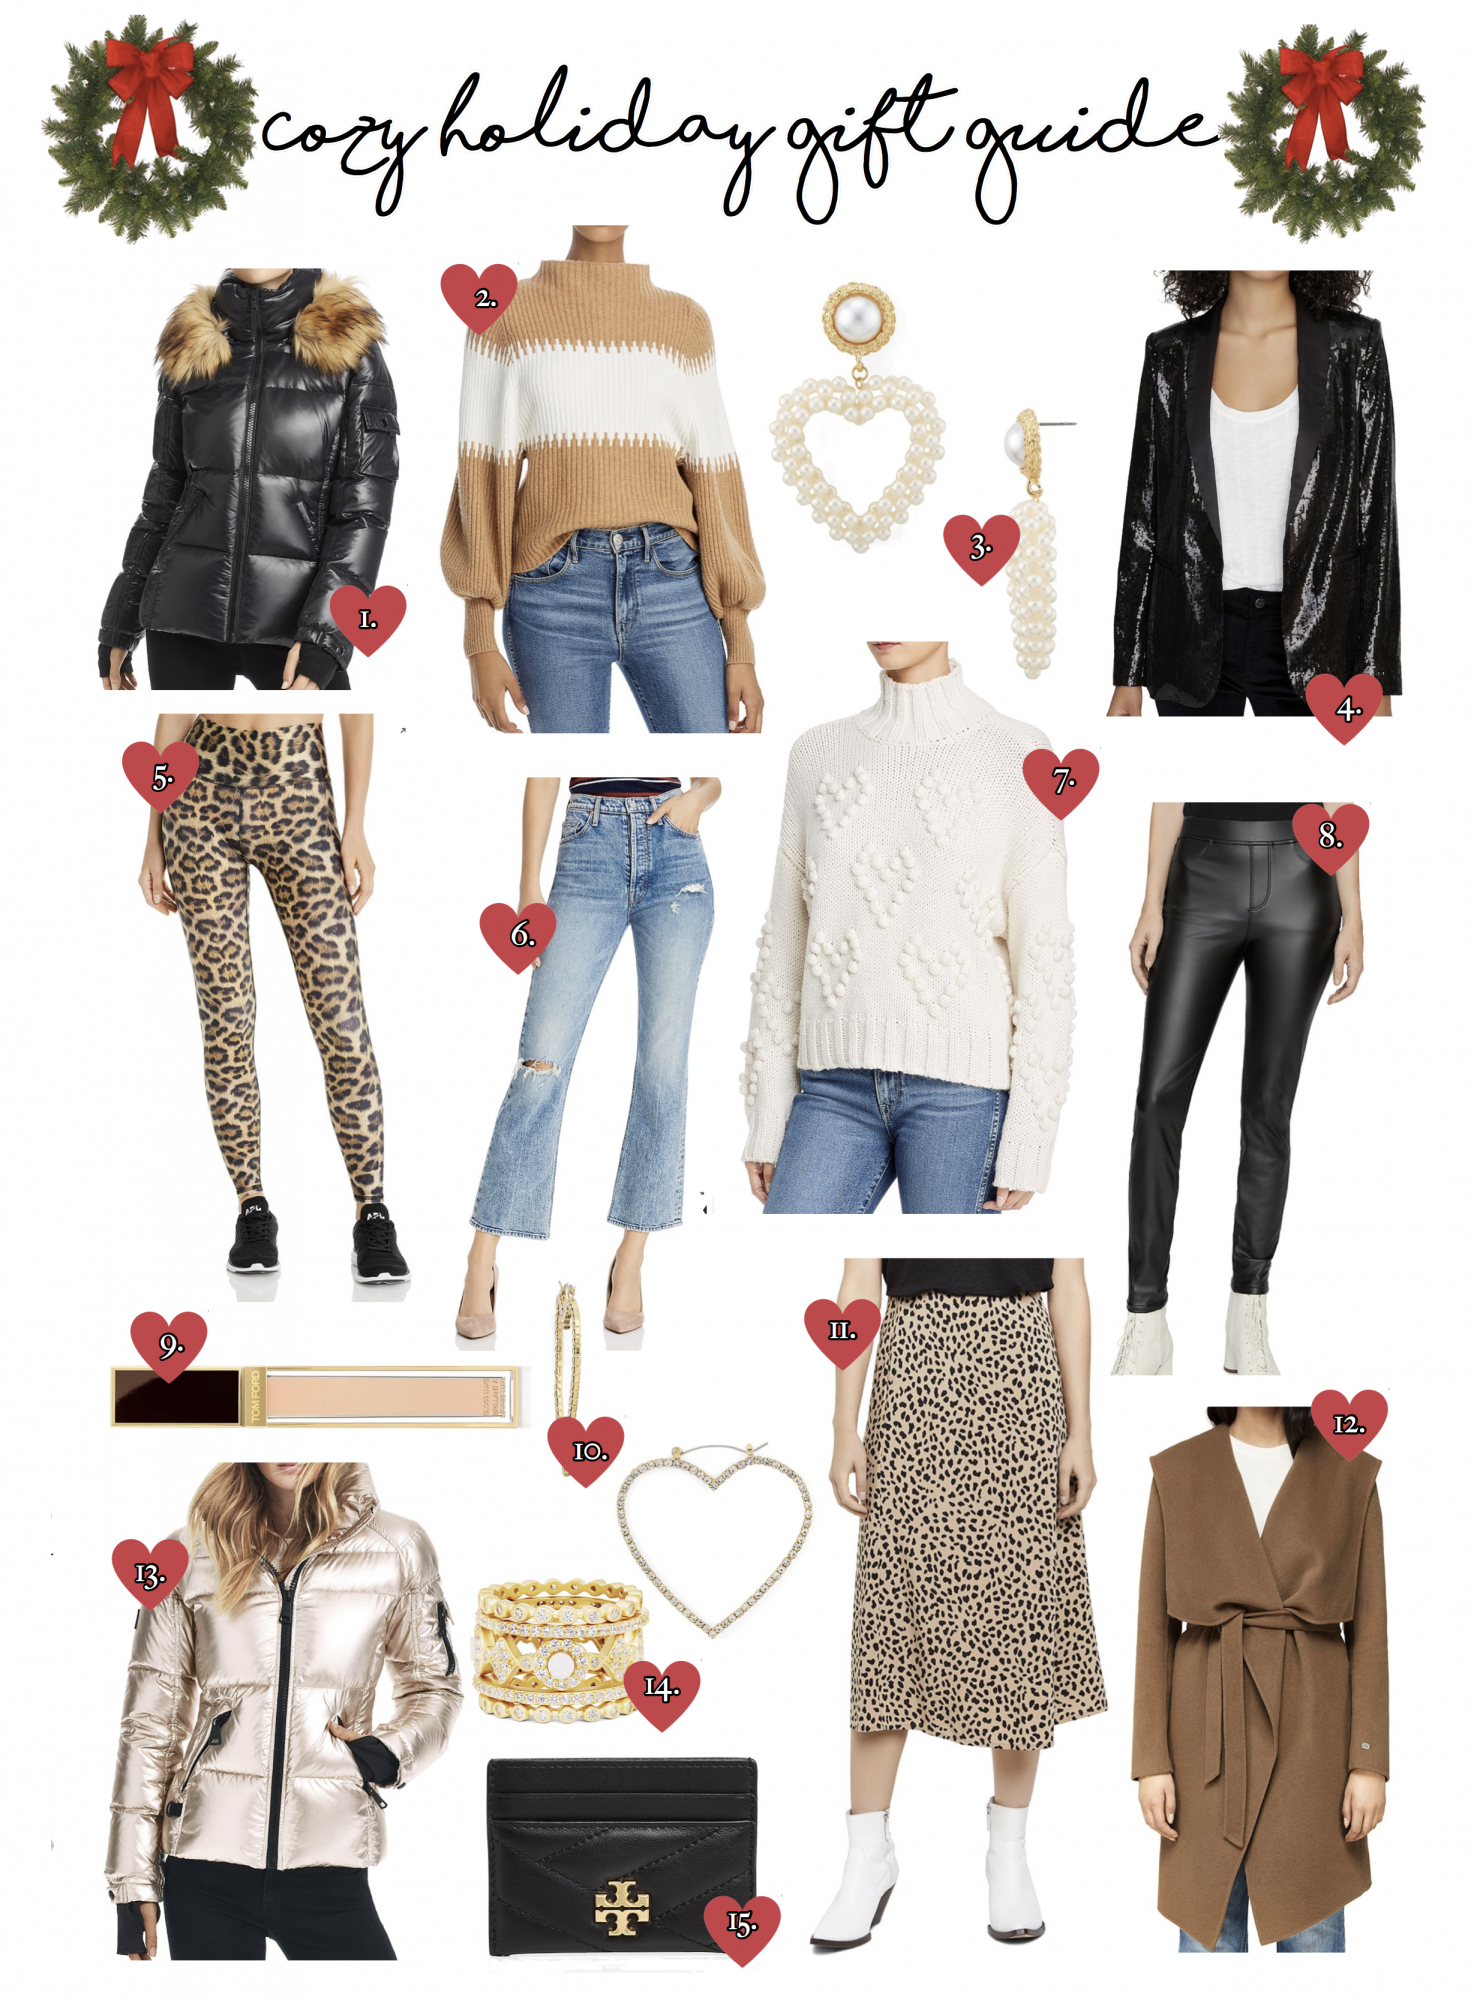 Bloomingdales sweaters holiday gift guide | Cozy Gift Ideas by popular Oklahoma life and style blog, The Sweetest Thing: collage image of MATTE BLACK PUFFER JACKET W/FAUX FUR HOOD TRIM, TAN & WHITE STRIPED MOCK NECK SWEATER, PEARL HEART SHAPED EARRINGS, BLACK SEQUIN BLAZER, LEOPARD PRINT YOGA PANTS, HIGH WAISTED STRAIGHT LEG DENIM, HEART POM TURTLENECK SWEATER, FAUX LEATHER LEGGINGS, TOM FORD LUXE LIP GLOSS, DIAMOND HEART EARRINGS, LEOPARD PRINT MIDI SKIRT, WOOL BLEND DRAPED WRAP COAT, ROSE GOLD PUFFER JACKET, GOLD STACKED RINGS, TORY BURCH CARD CASE, JOIE SWEATER, KATE SPADE PINK TEDDY BEAR JACKET, FRENCH CONNECTION SEQUIN DRESS, and LINE & DOT FRINGE SWEATER.